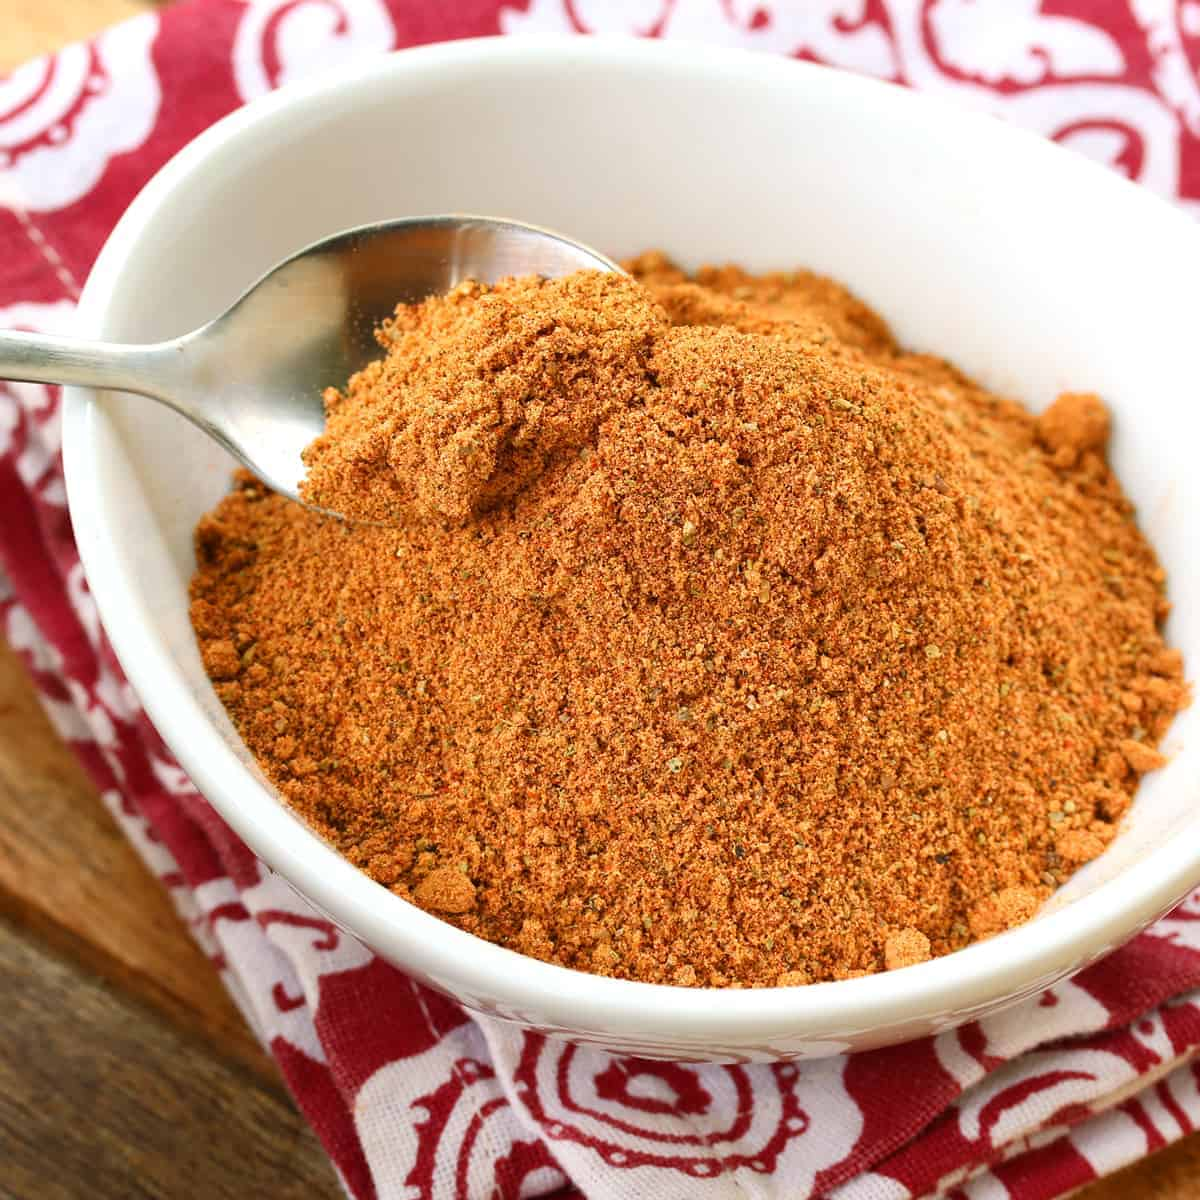 Greek seasoning recipe homemade best easy quick all purpose mix blend copycat Cavender's